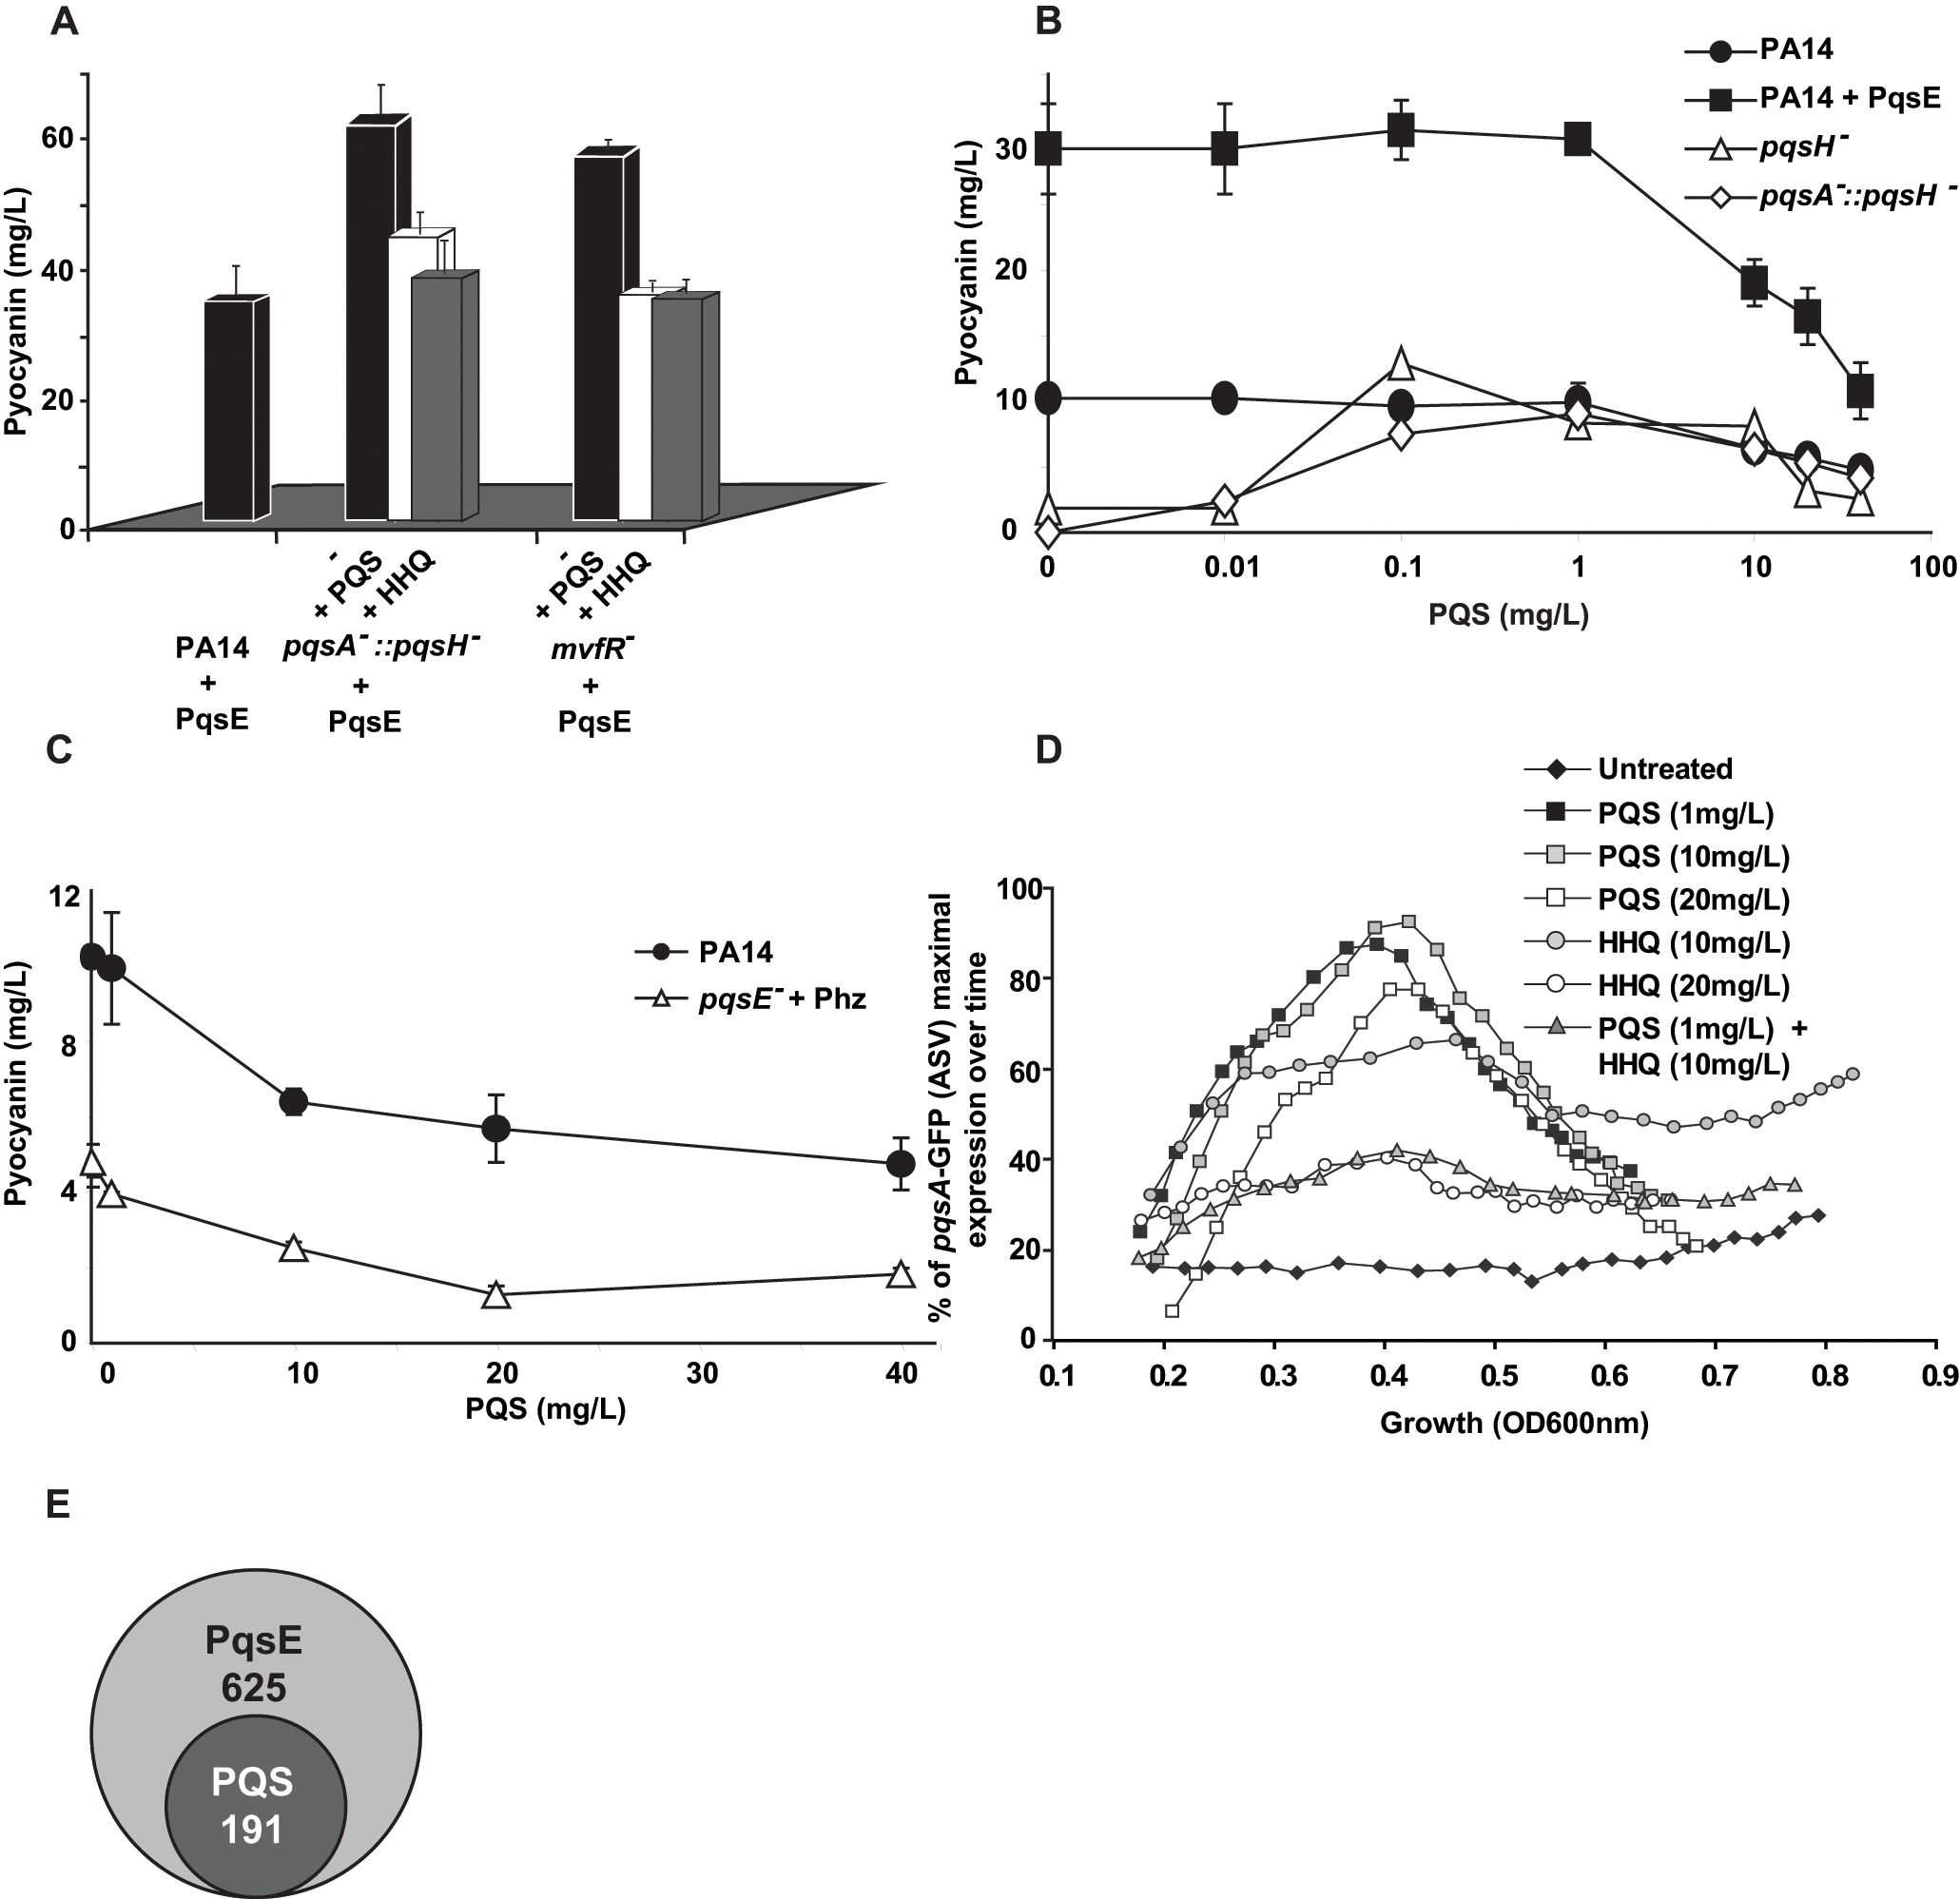 Negative homeostatic feedback regulation on MvfR regulon products and activity is mediated via cell-cell signaling molecule concentration.